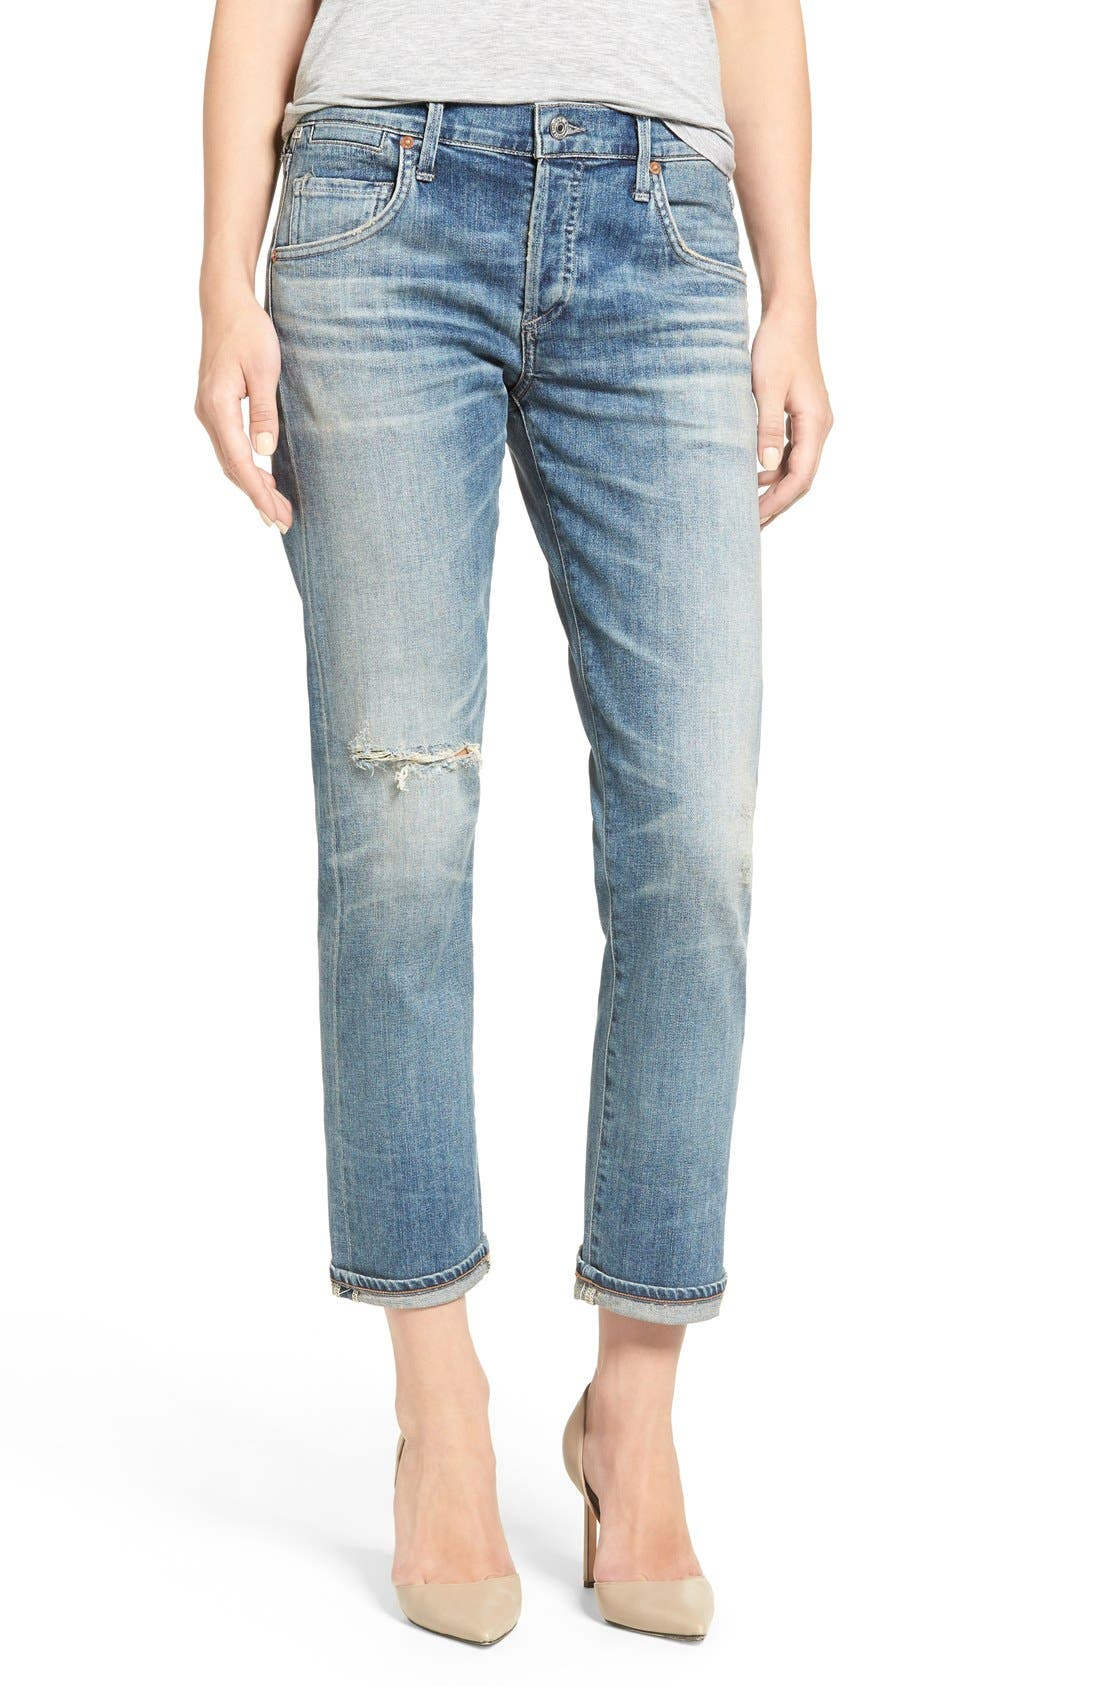 CITIZENS OF HUMANITY,                             'Emerson' Ripped Slim Boyfriend Jeans,                             Alternate thumbnail 6, color,                             469